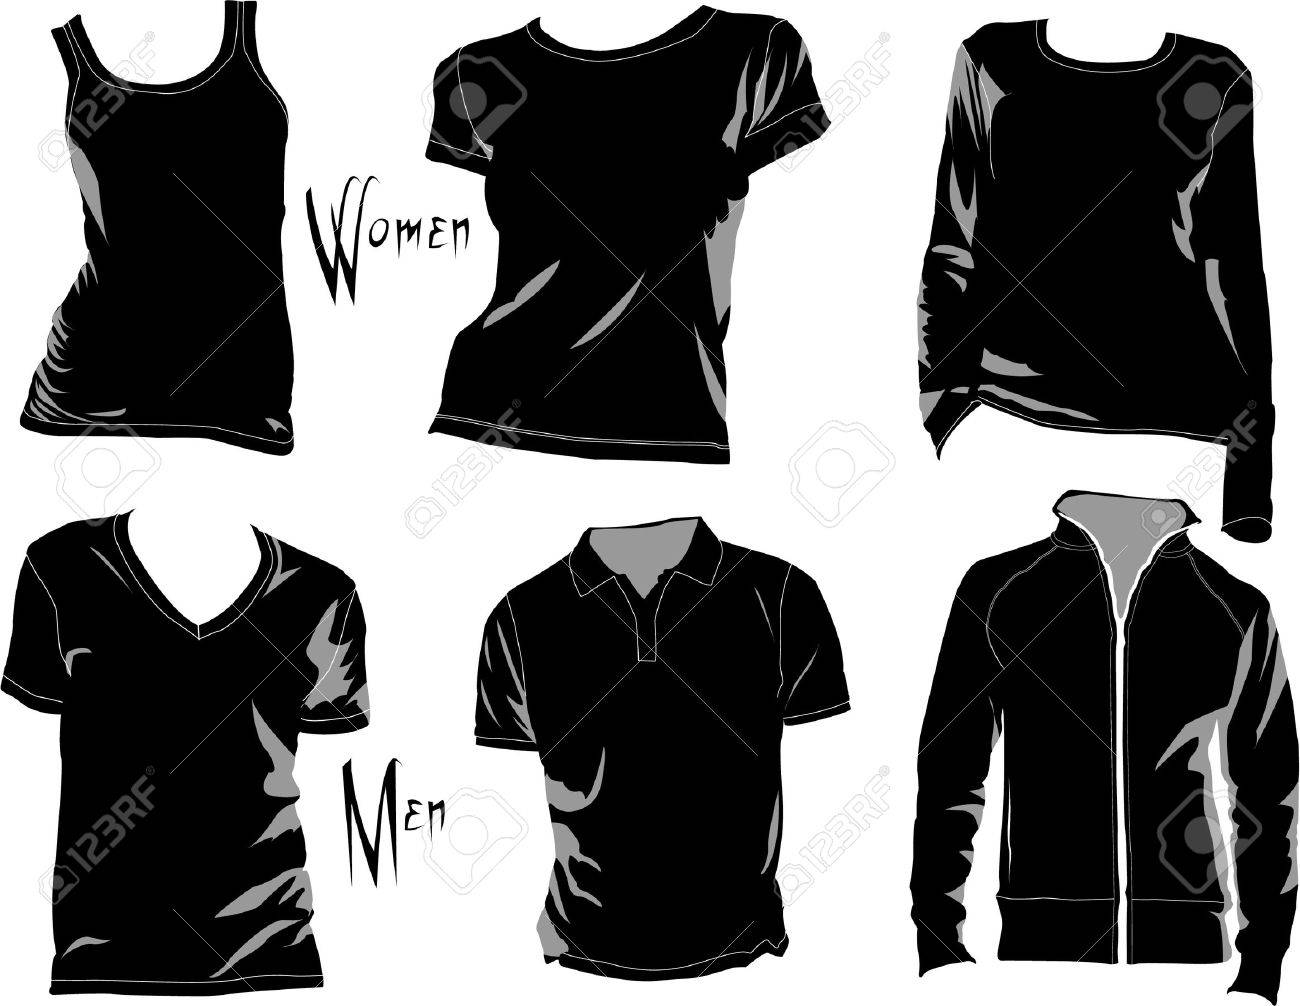 Black t shirt vector - T Shirt Template Mockup For Designs In Vector Format Colors Can Be Easily